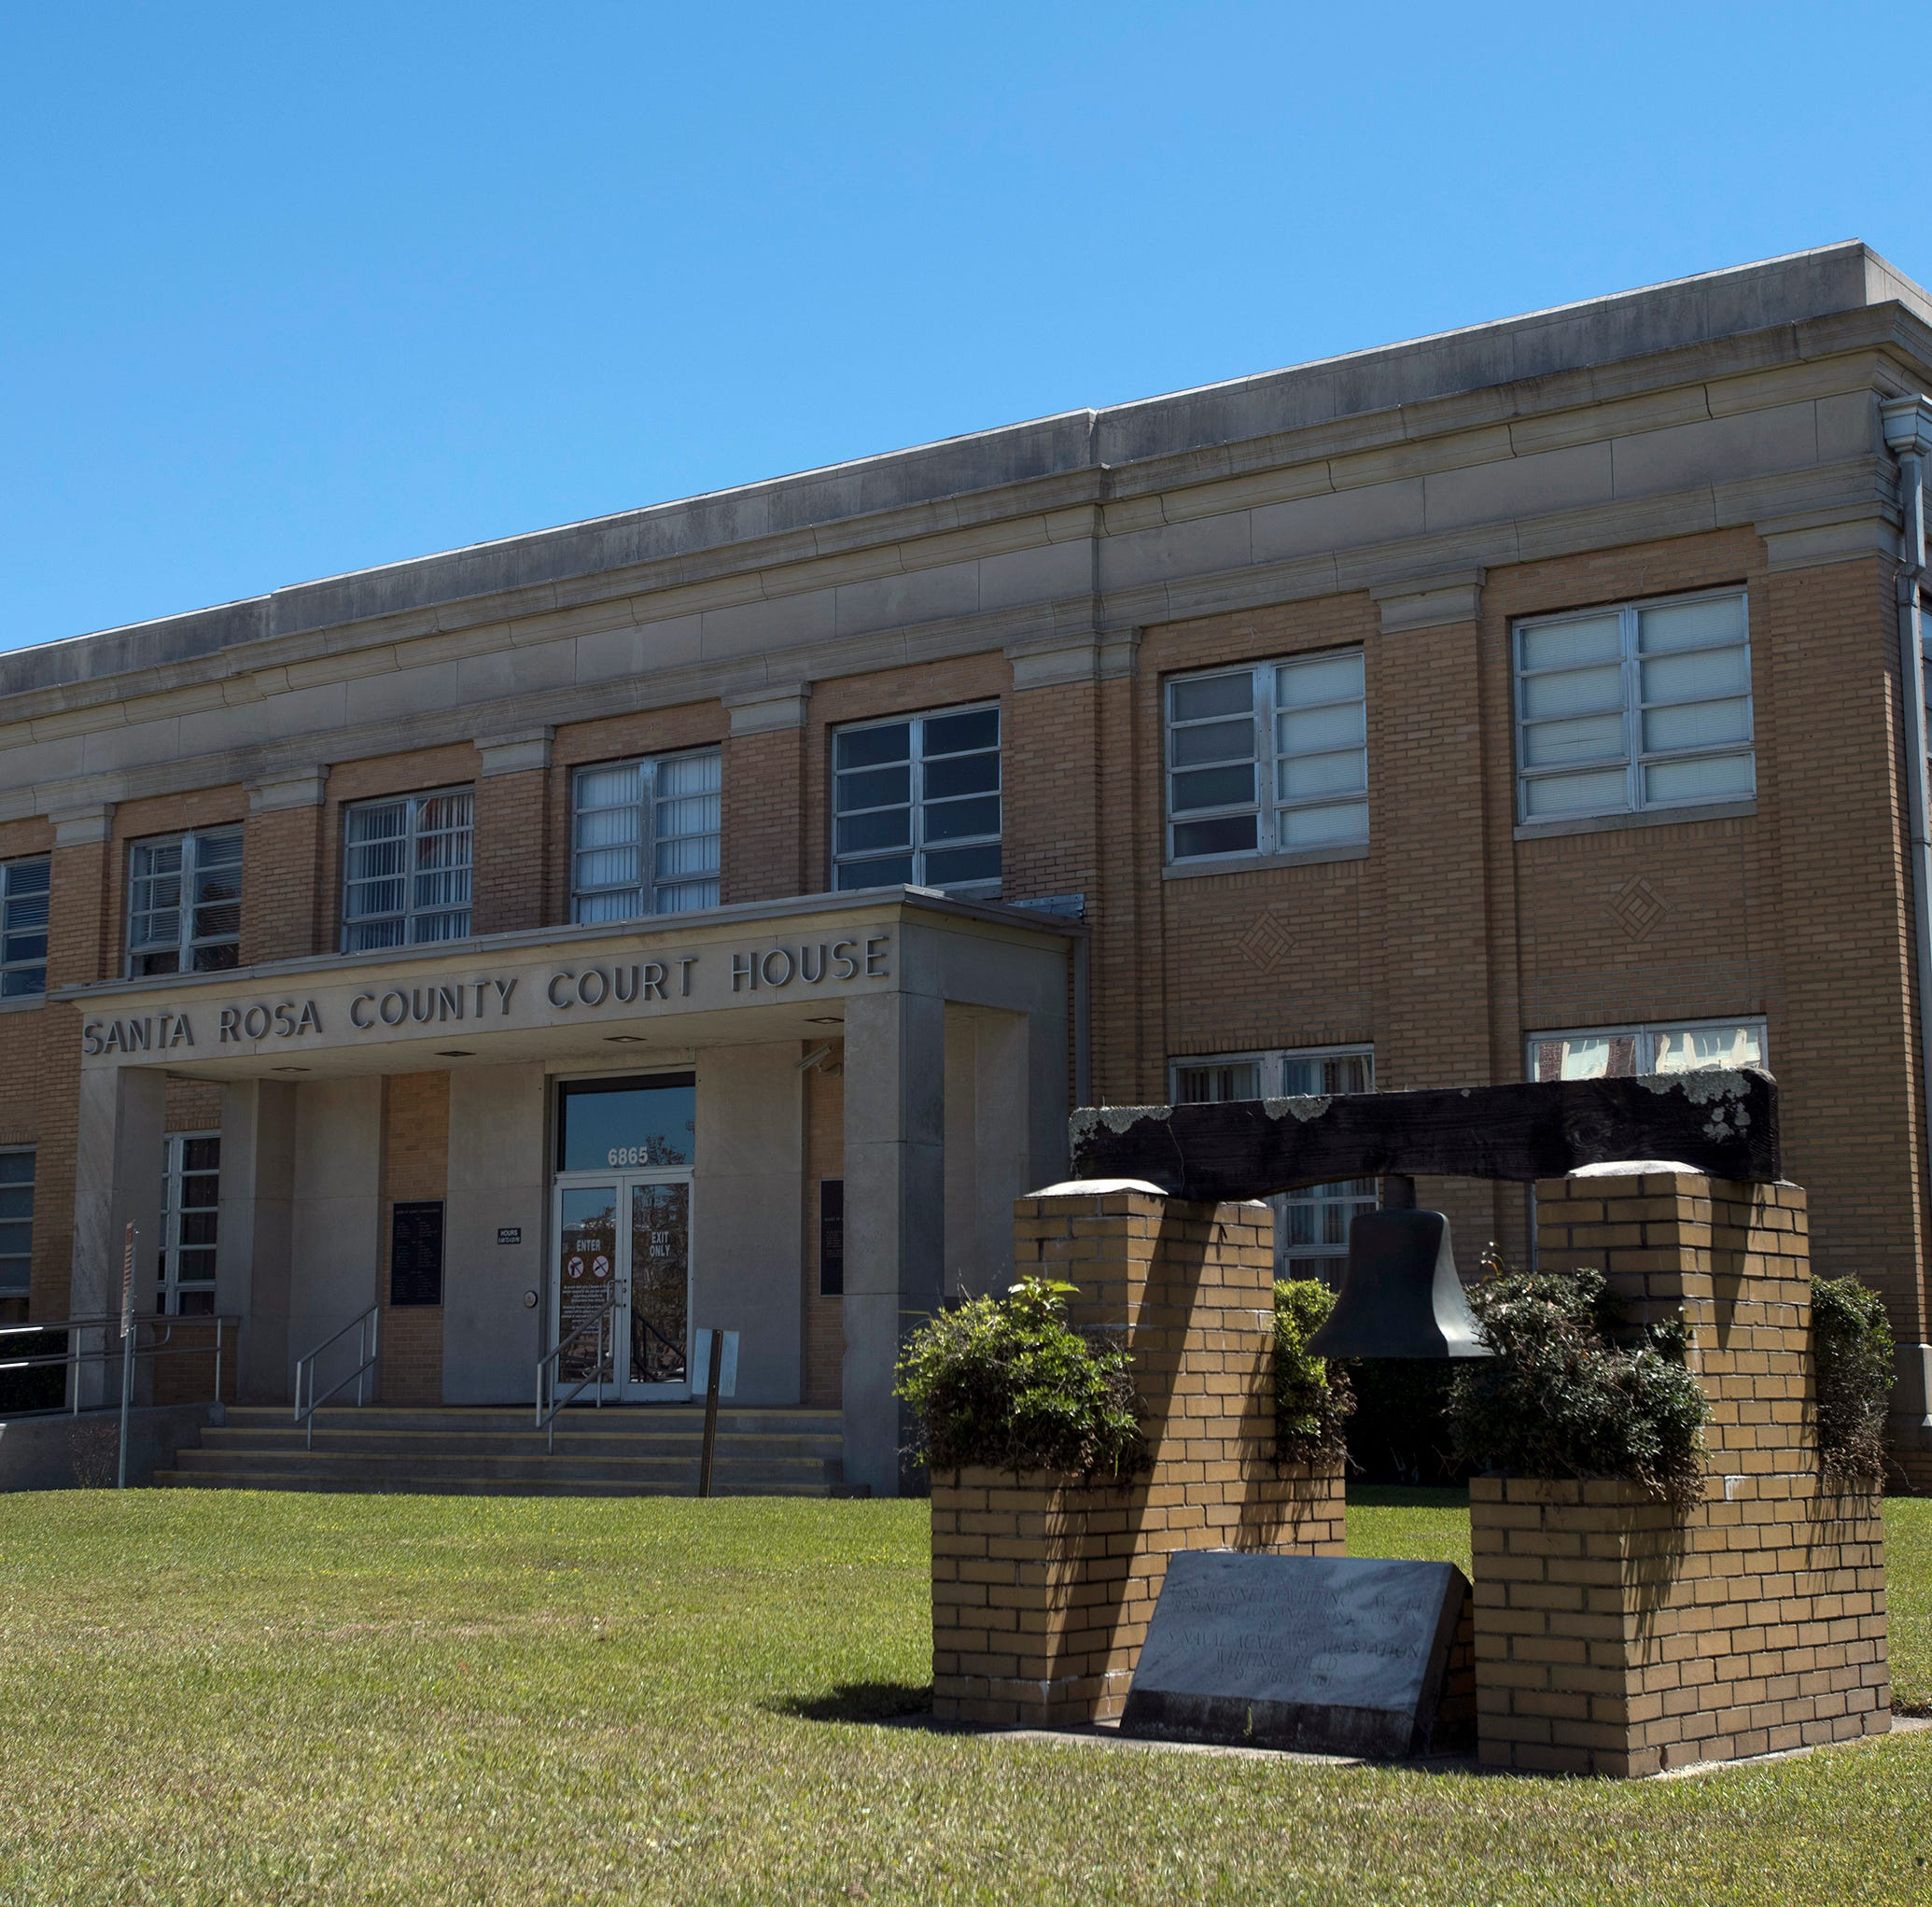 What will happen to downtown Milton when the Santa Rosa County Courthouse moves?